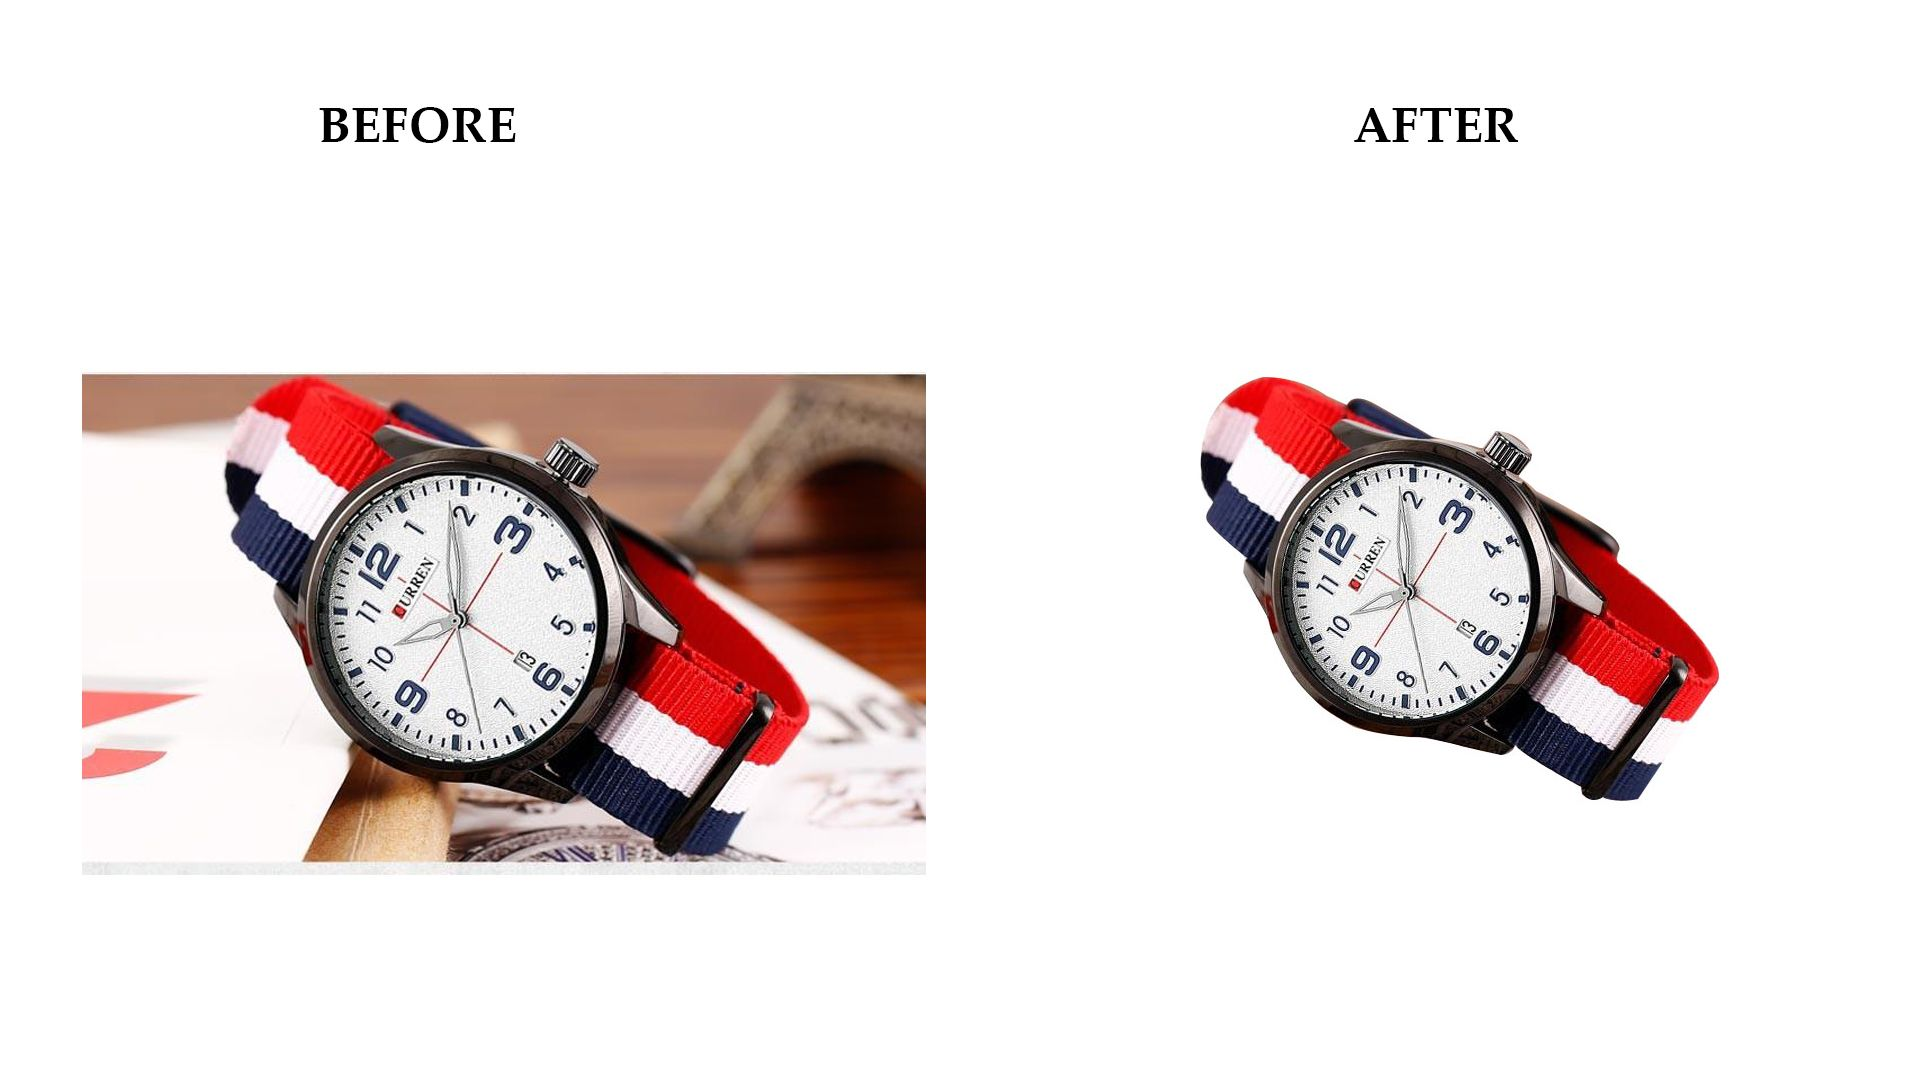 Professional Product Photo Editing Gig Services Background Remove Or Changing Replace With White Background Photo Editing Photoshop Editing Photoshop Images